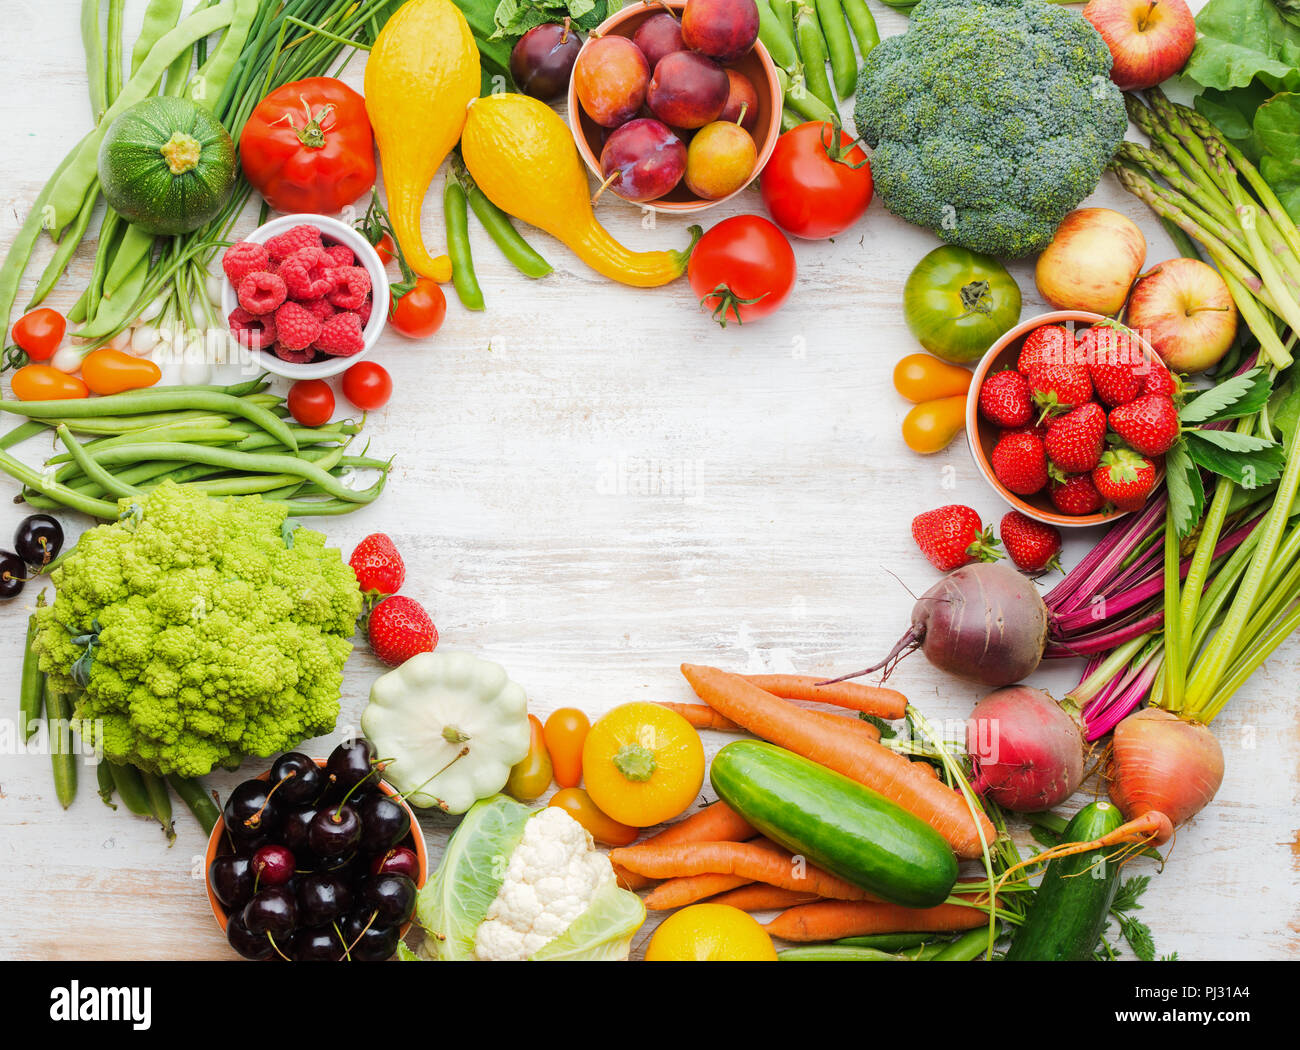 Colourful farm fruits vegetables berries, apples cherries peaches strawberries cabbage broccoli cauliflower squash tomatoes carrots spring onions beans beetroot, copy space, top view Stock Photo